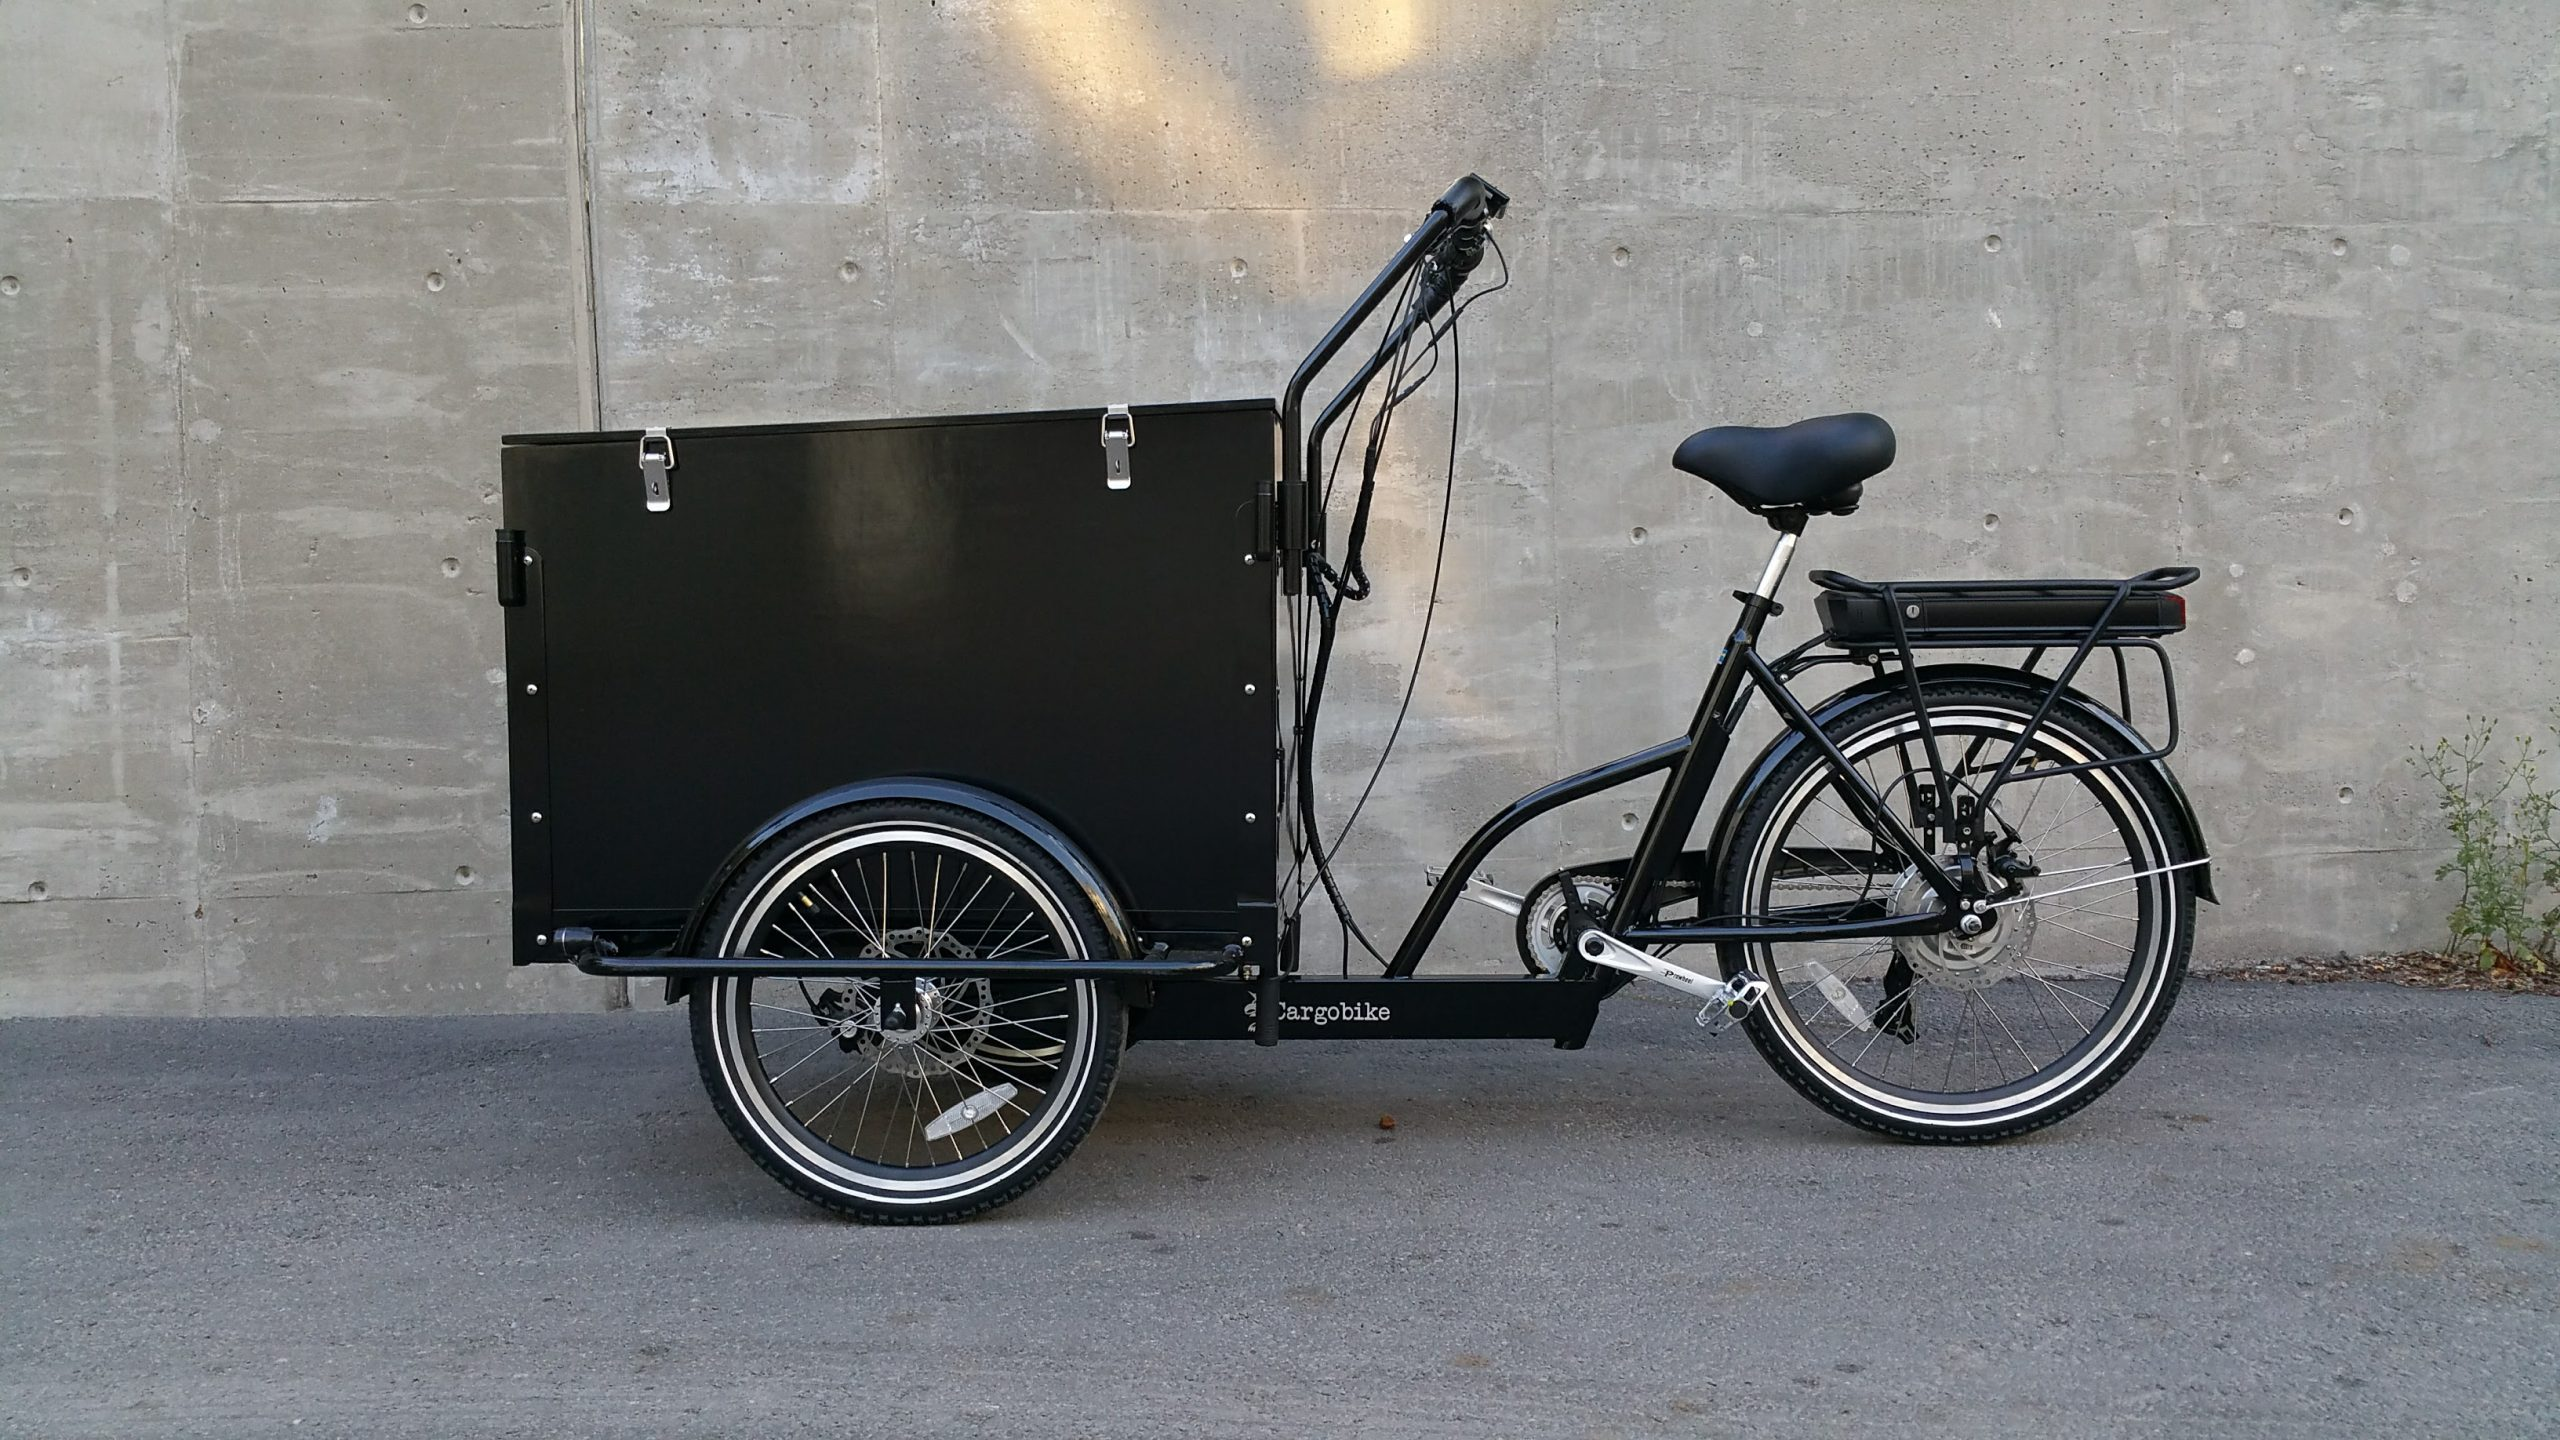 CARGOBIKE CLASSIC BOX ELECTRIC + BAFANG 8FUN 250W/36V/13Ah